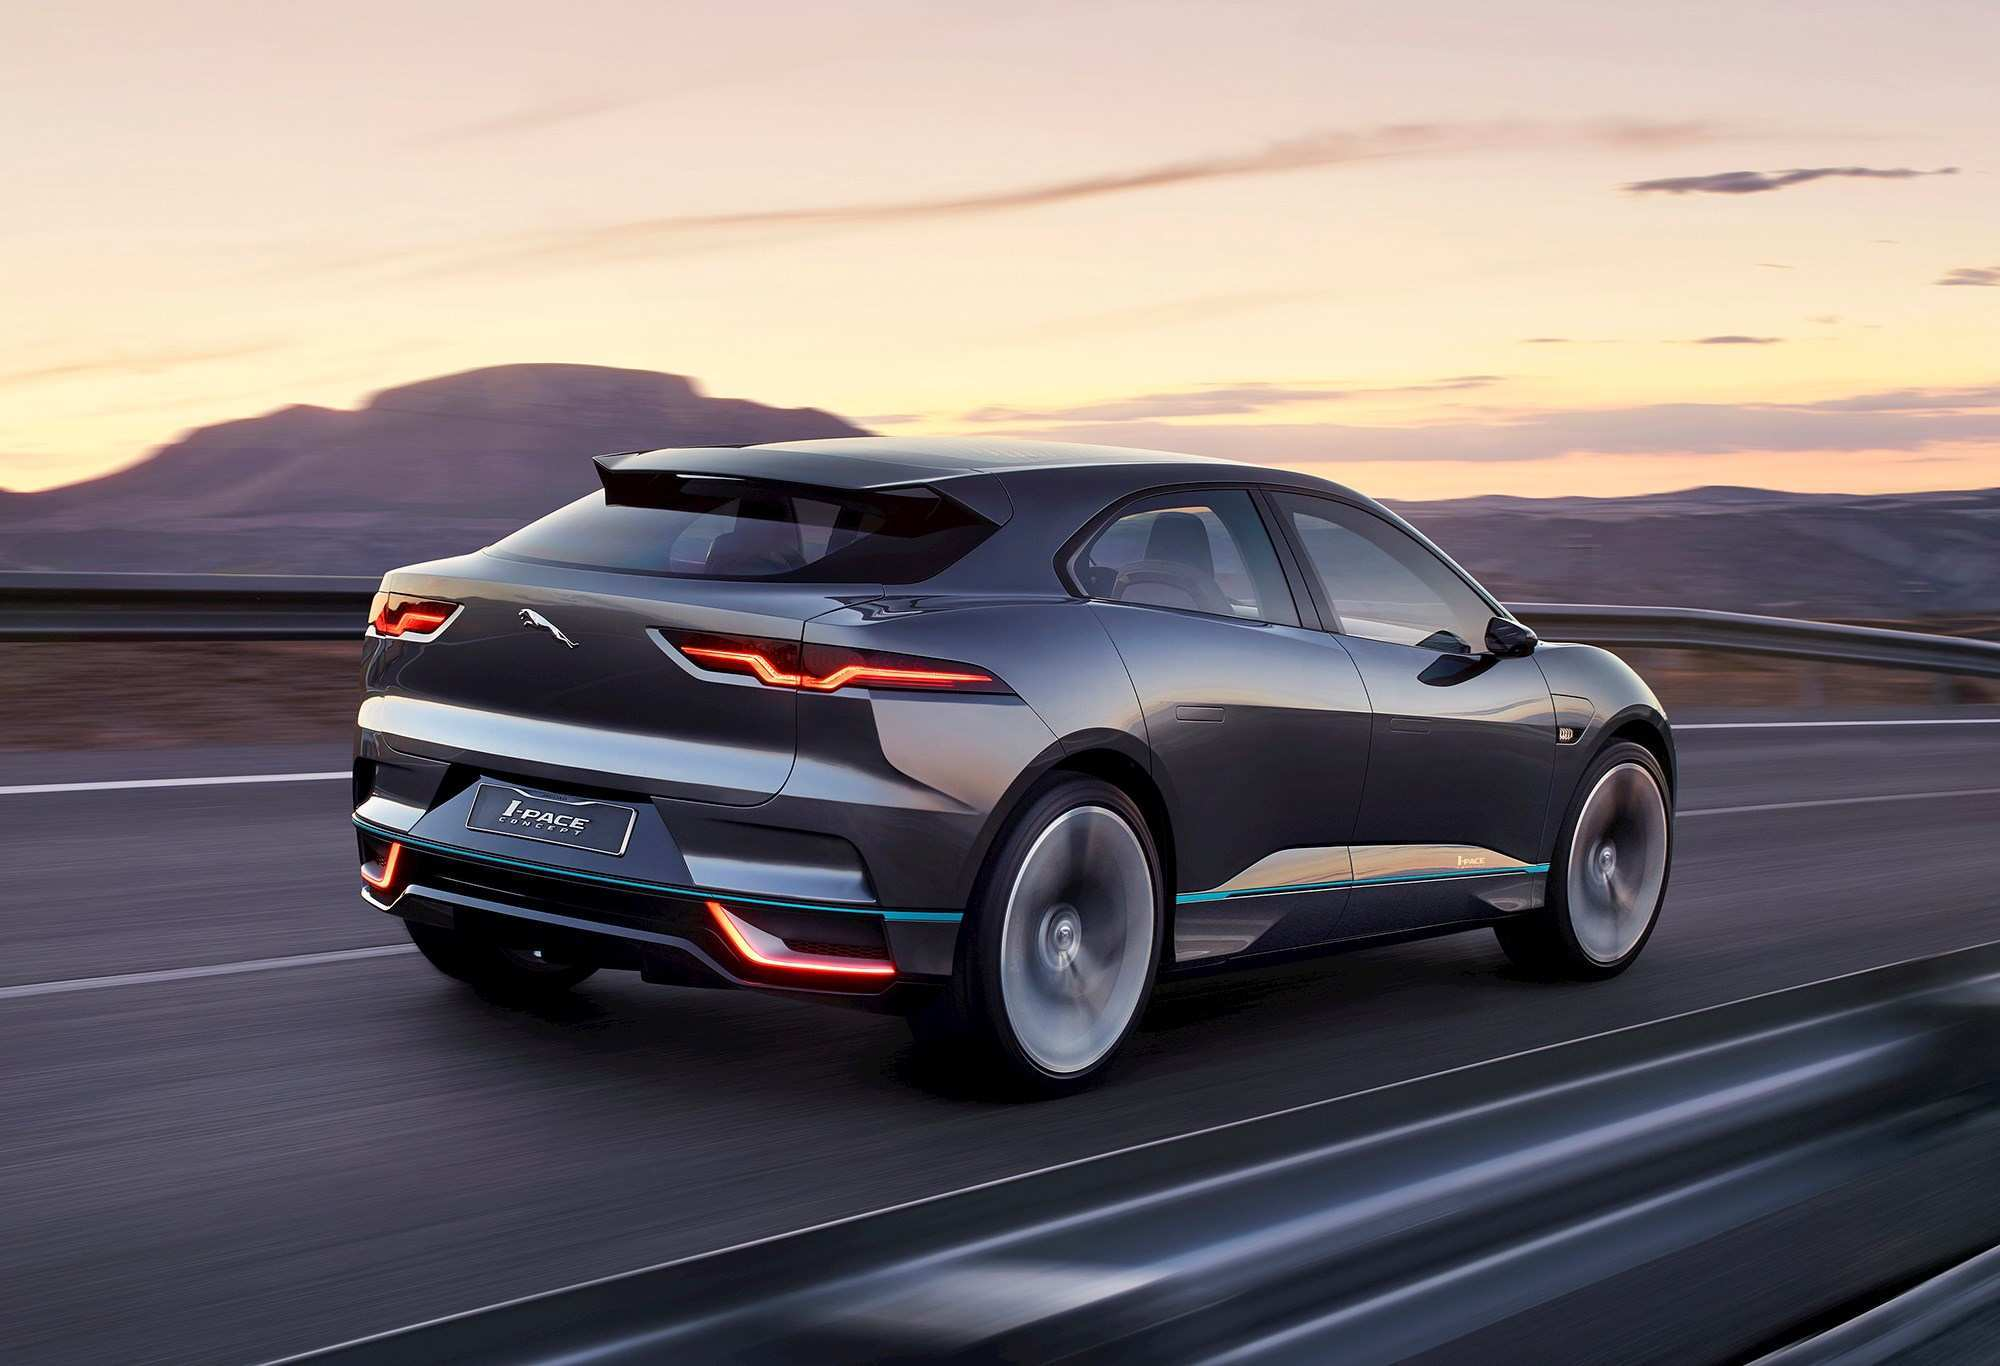 87 Best Review 2019 Jaguar I Pace Price Review By 2019